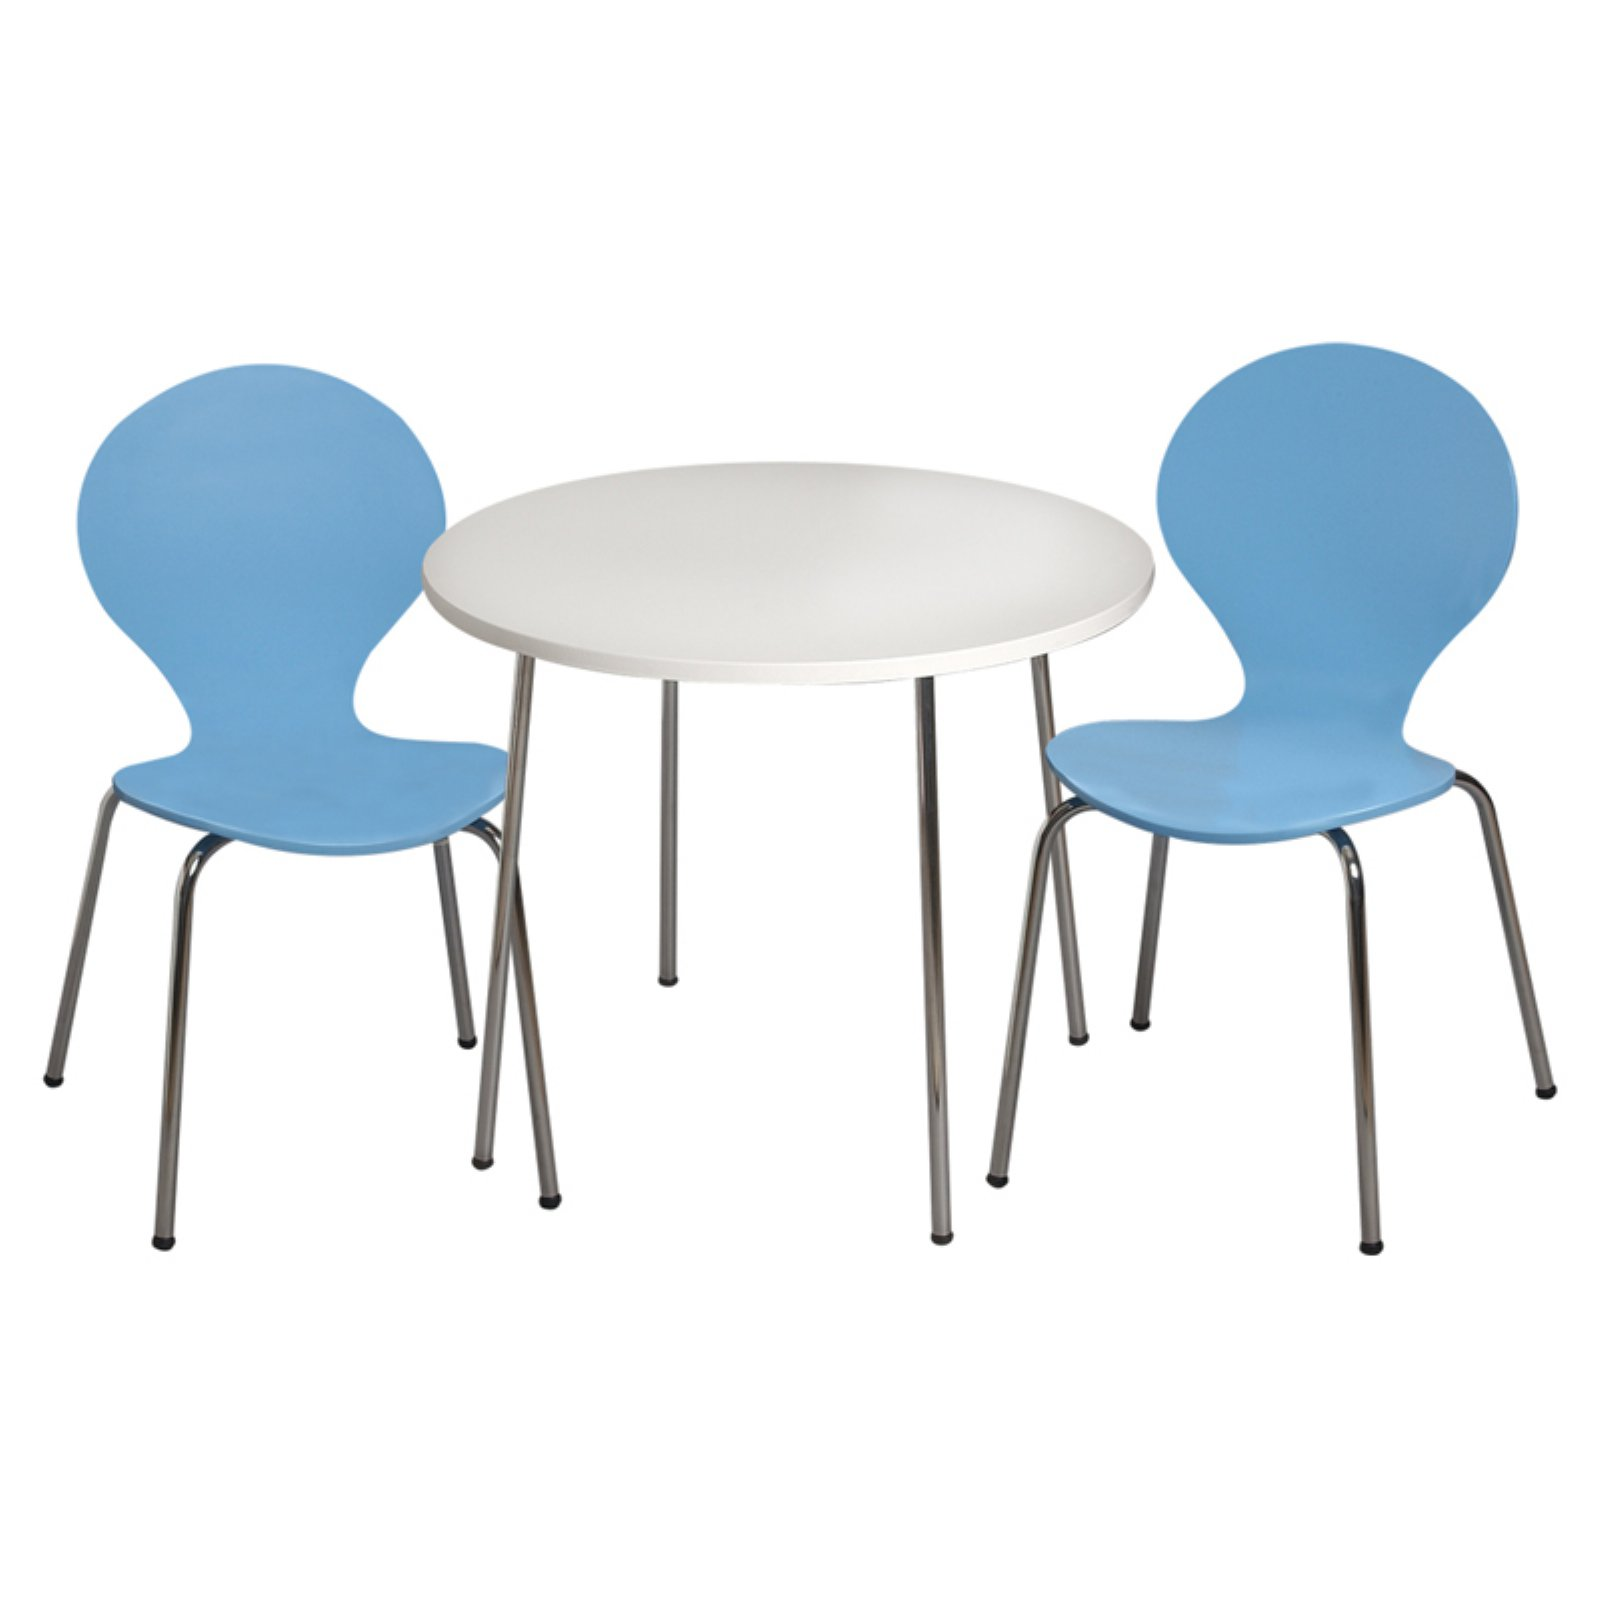 Gift Mark Modern Childrens Table and 2 Chair Set with Chrome Legs